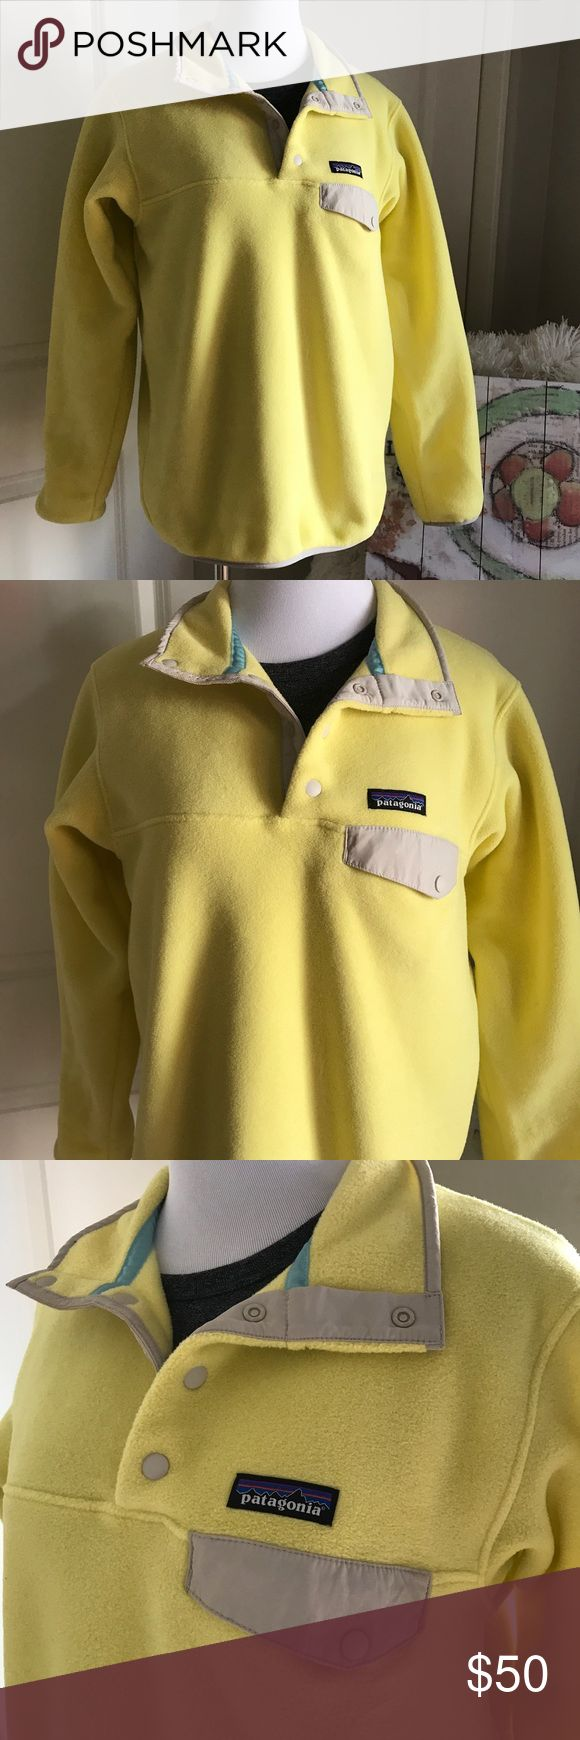 Patagonia Lightweight Snap T Fleece Pullover Lightweight Synchilla Pullover from Patagonia. Bright and cheerful yellow color, Sz S. Patagonia Jackets & Coats